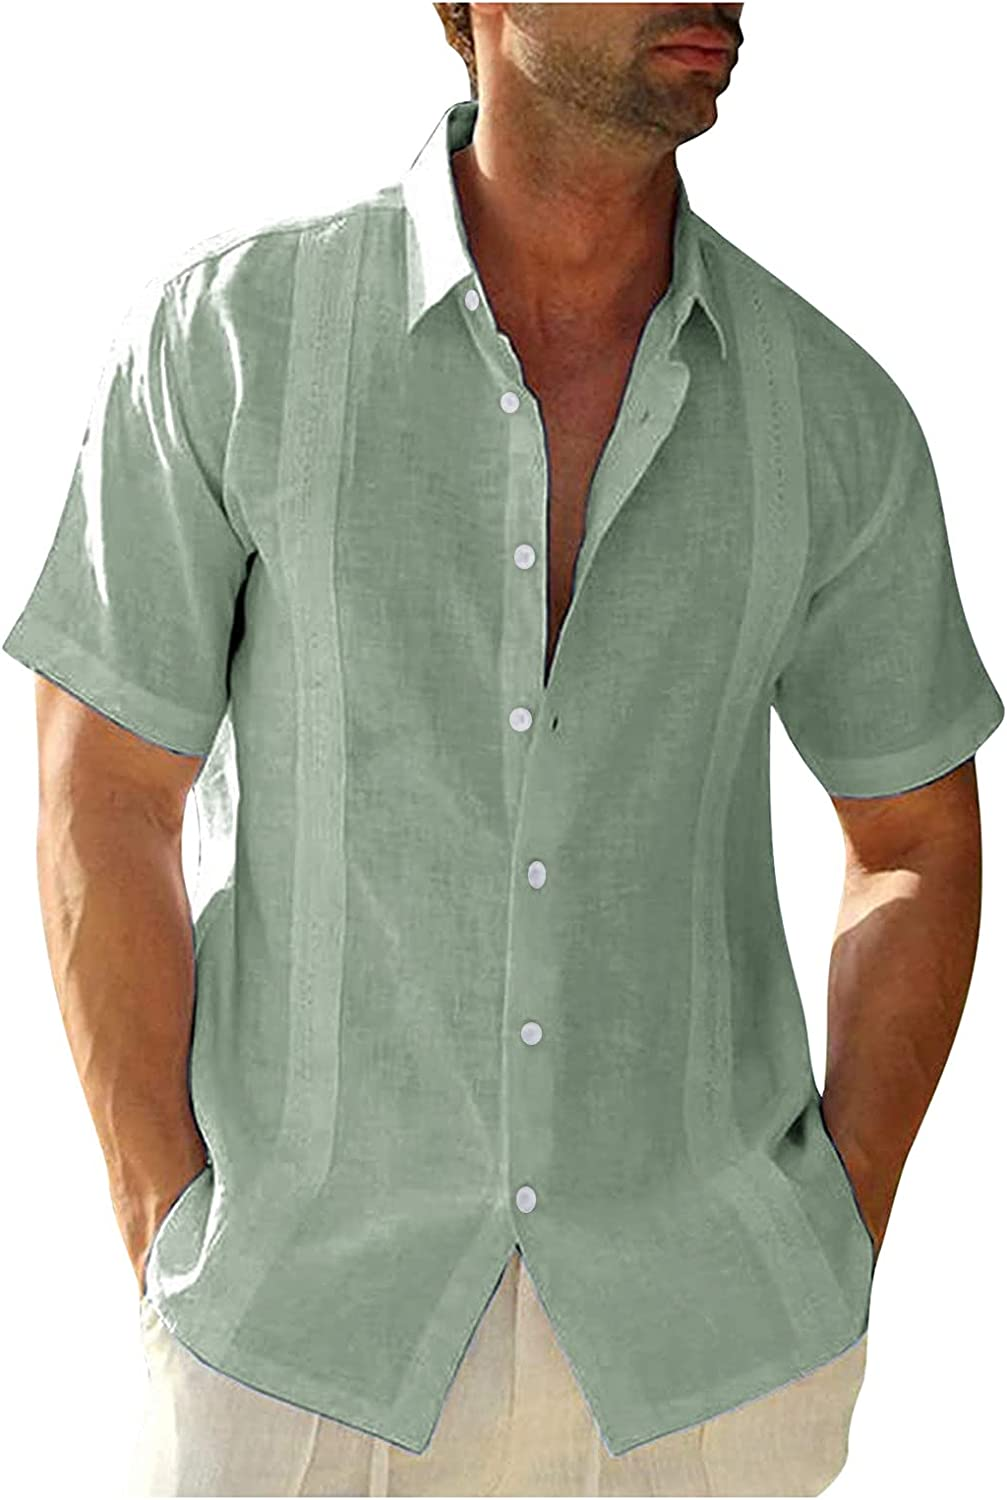 Men's Short Sleeve Shirt Tops Casual Embroidery Edge Solid Turn-Down Collar Blouses